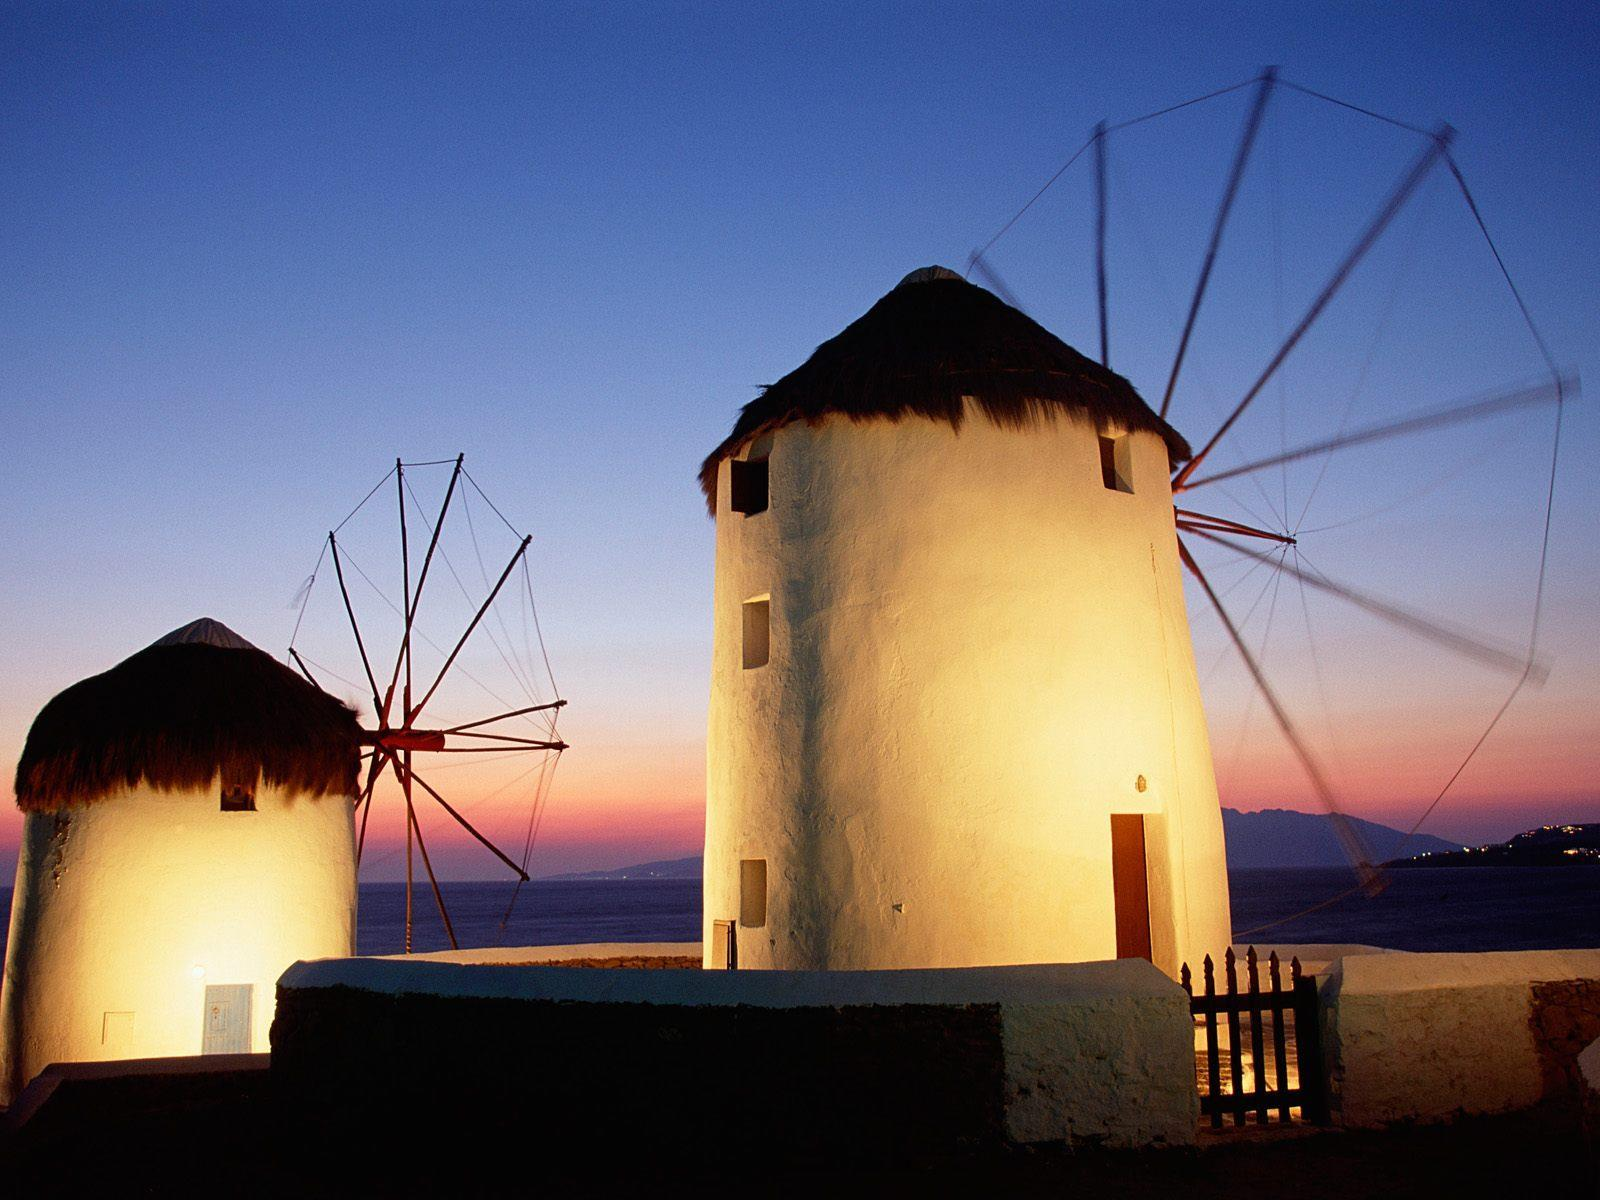 Grece_Mykonos-Windmills-Greece